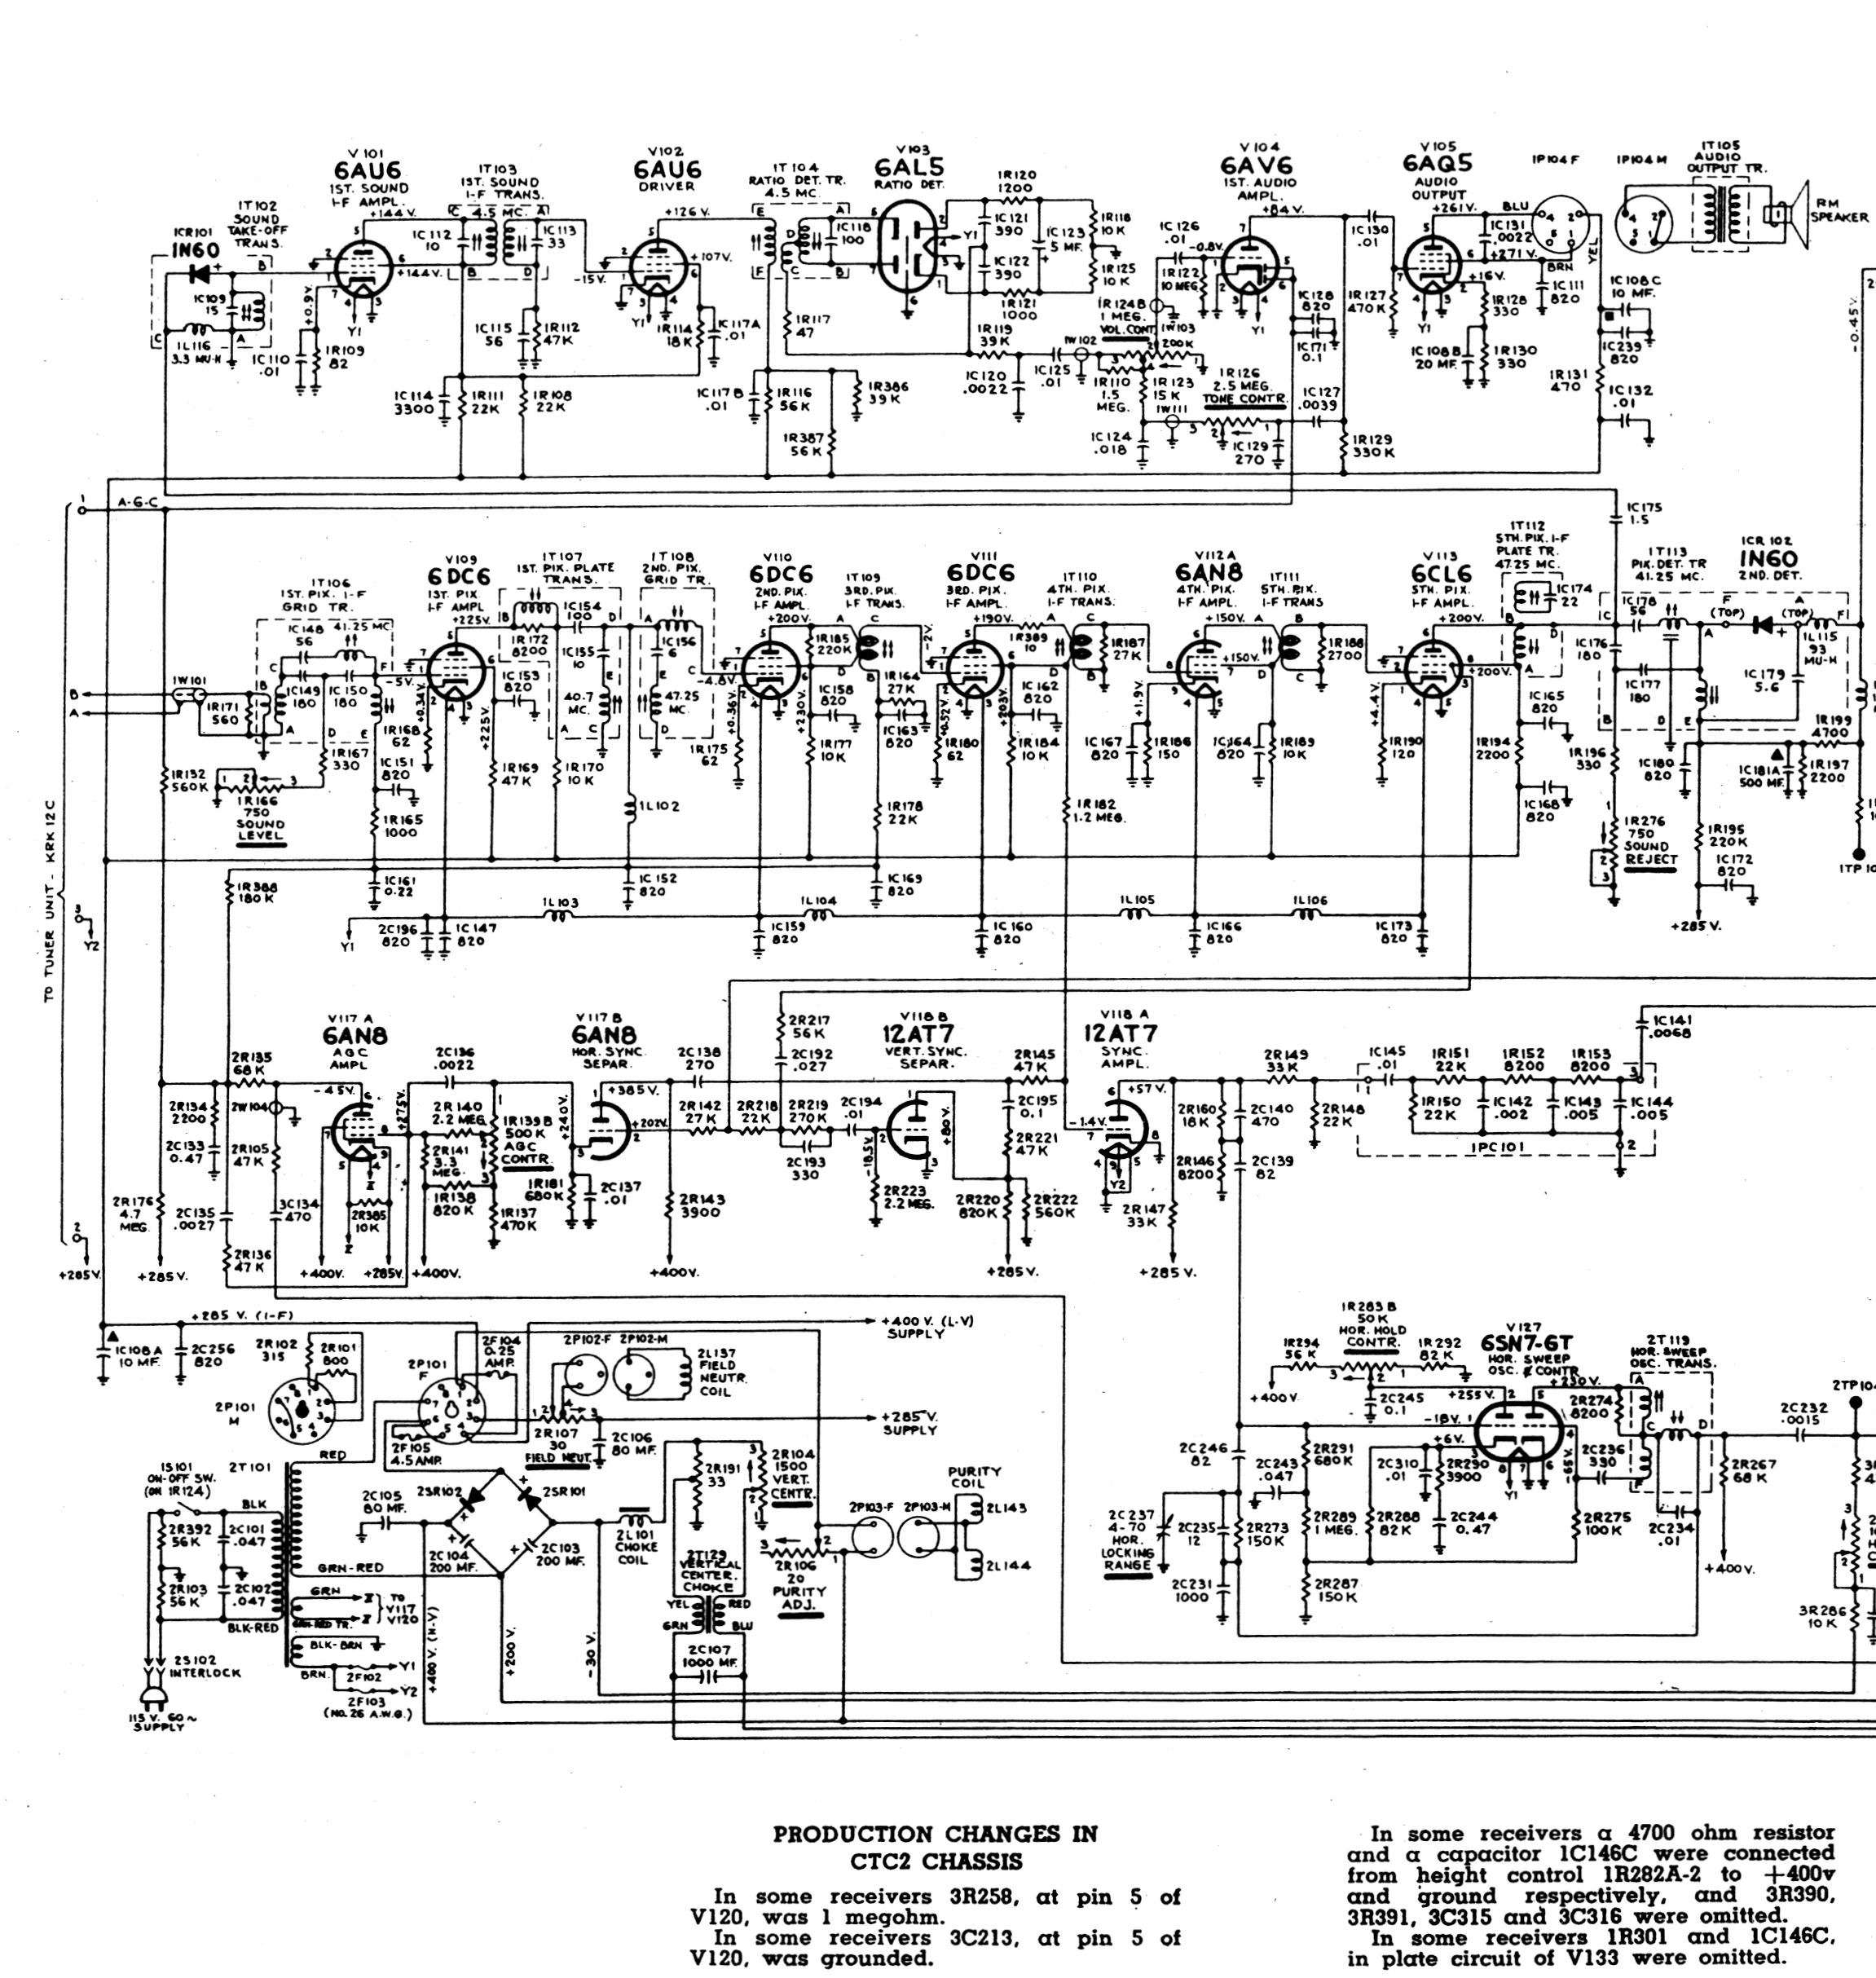 Television Rca Schematic Diagram further  on diagram of tv amp hdmi to rca